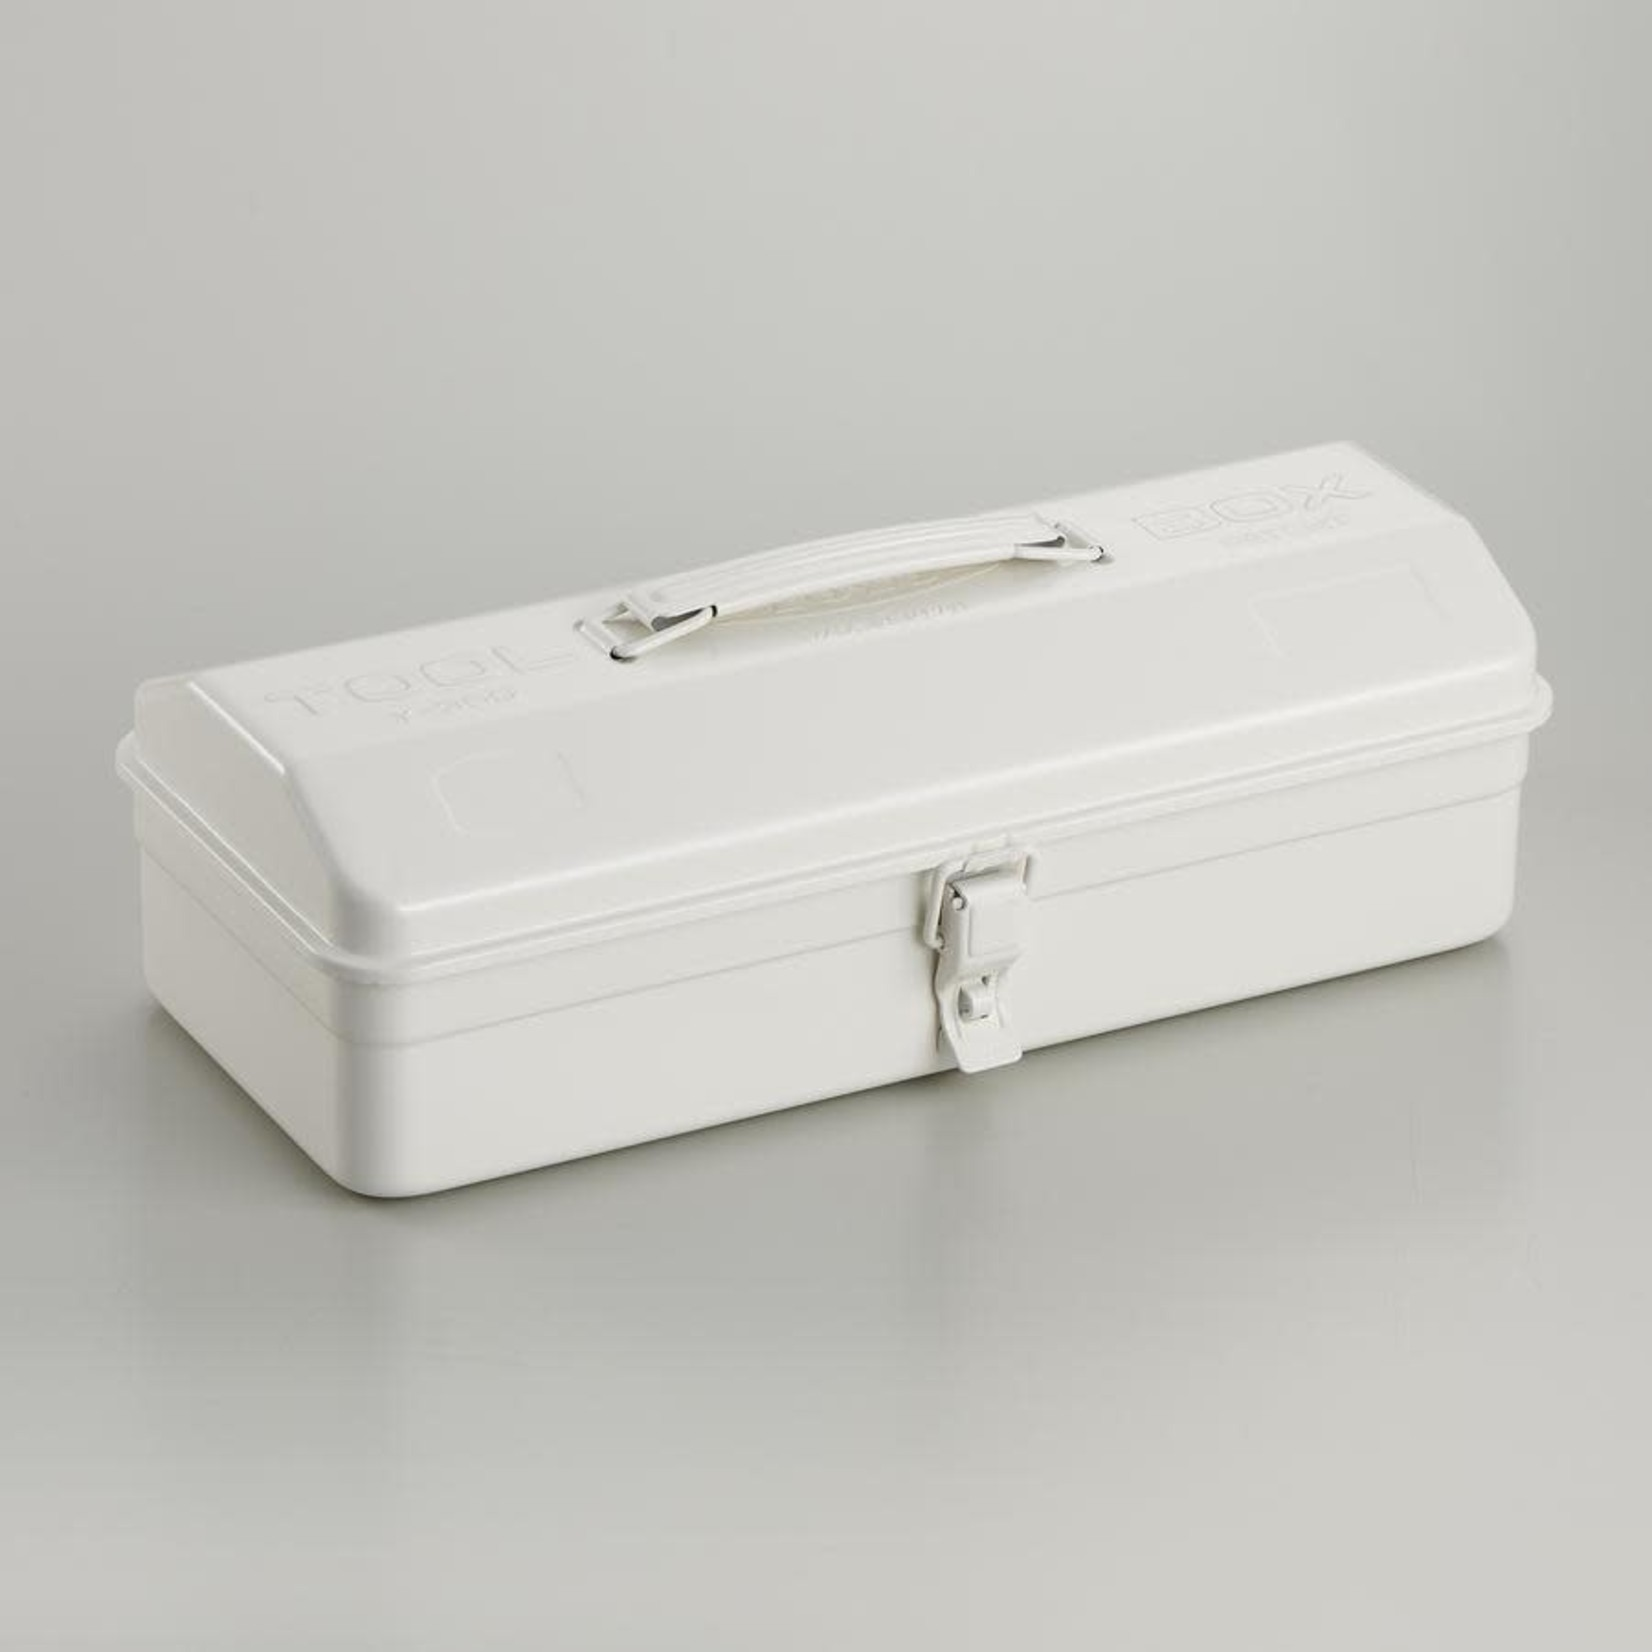 Toyo Toyo Steel Toolbox with Top Handle Y-350 White